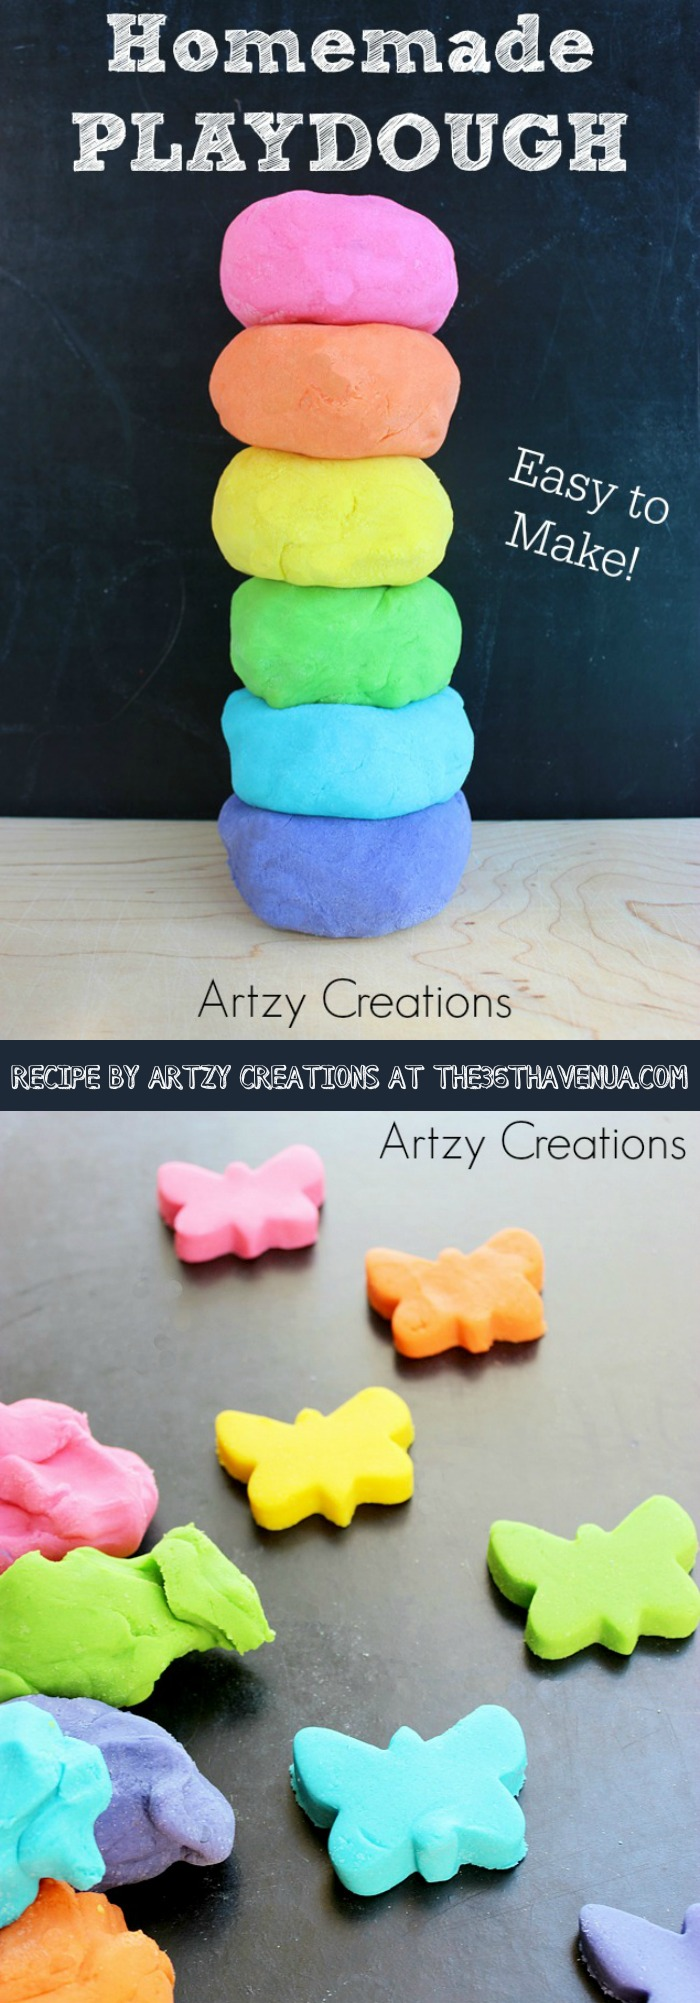 Homemade Play-Dough Recipe by artzycreations.com Pin it now and make it later!